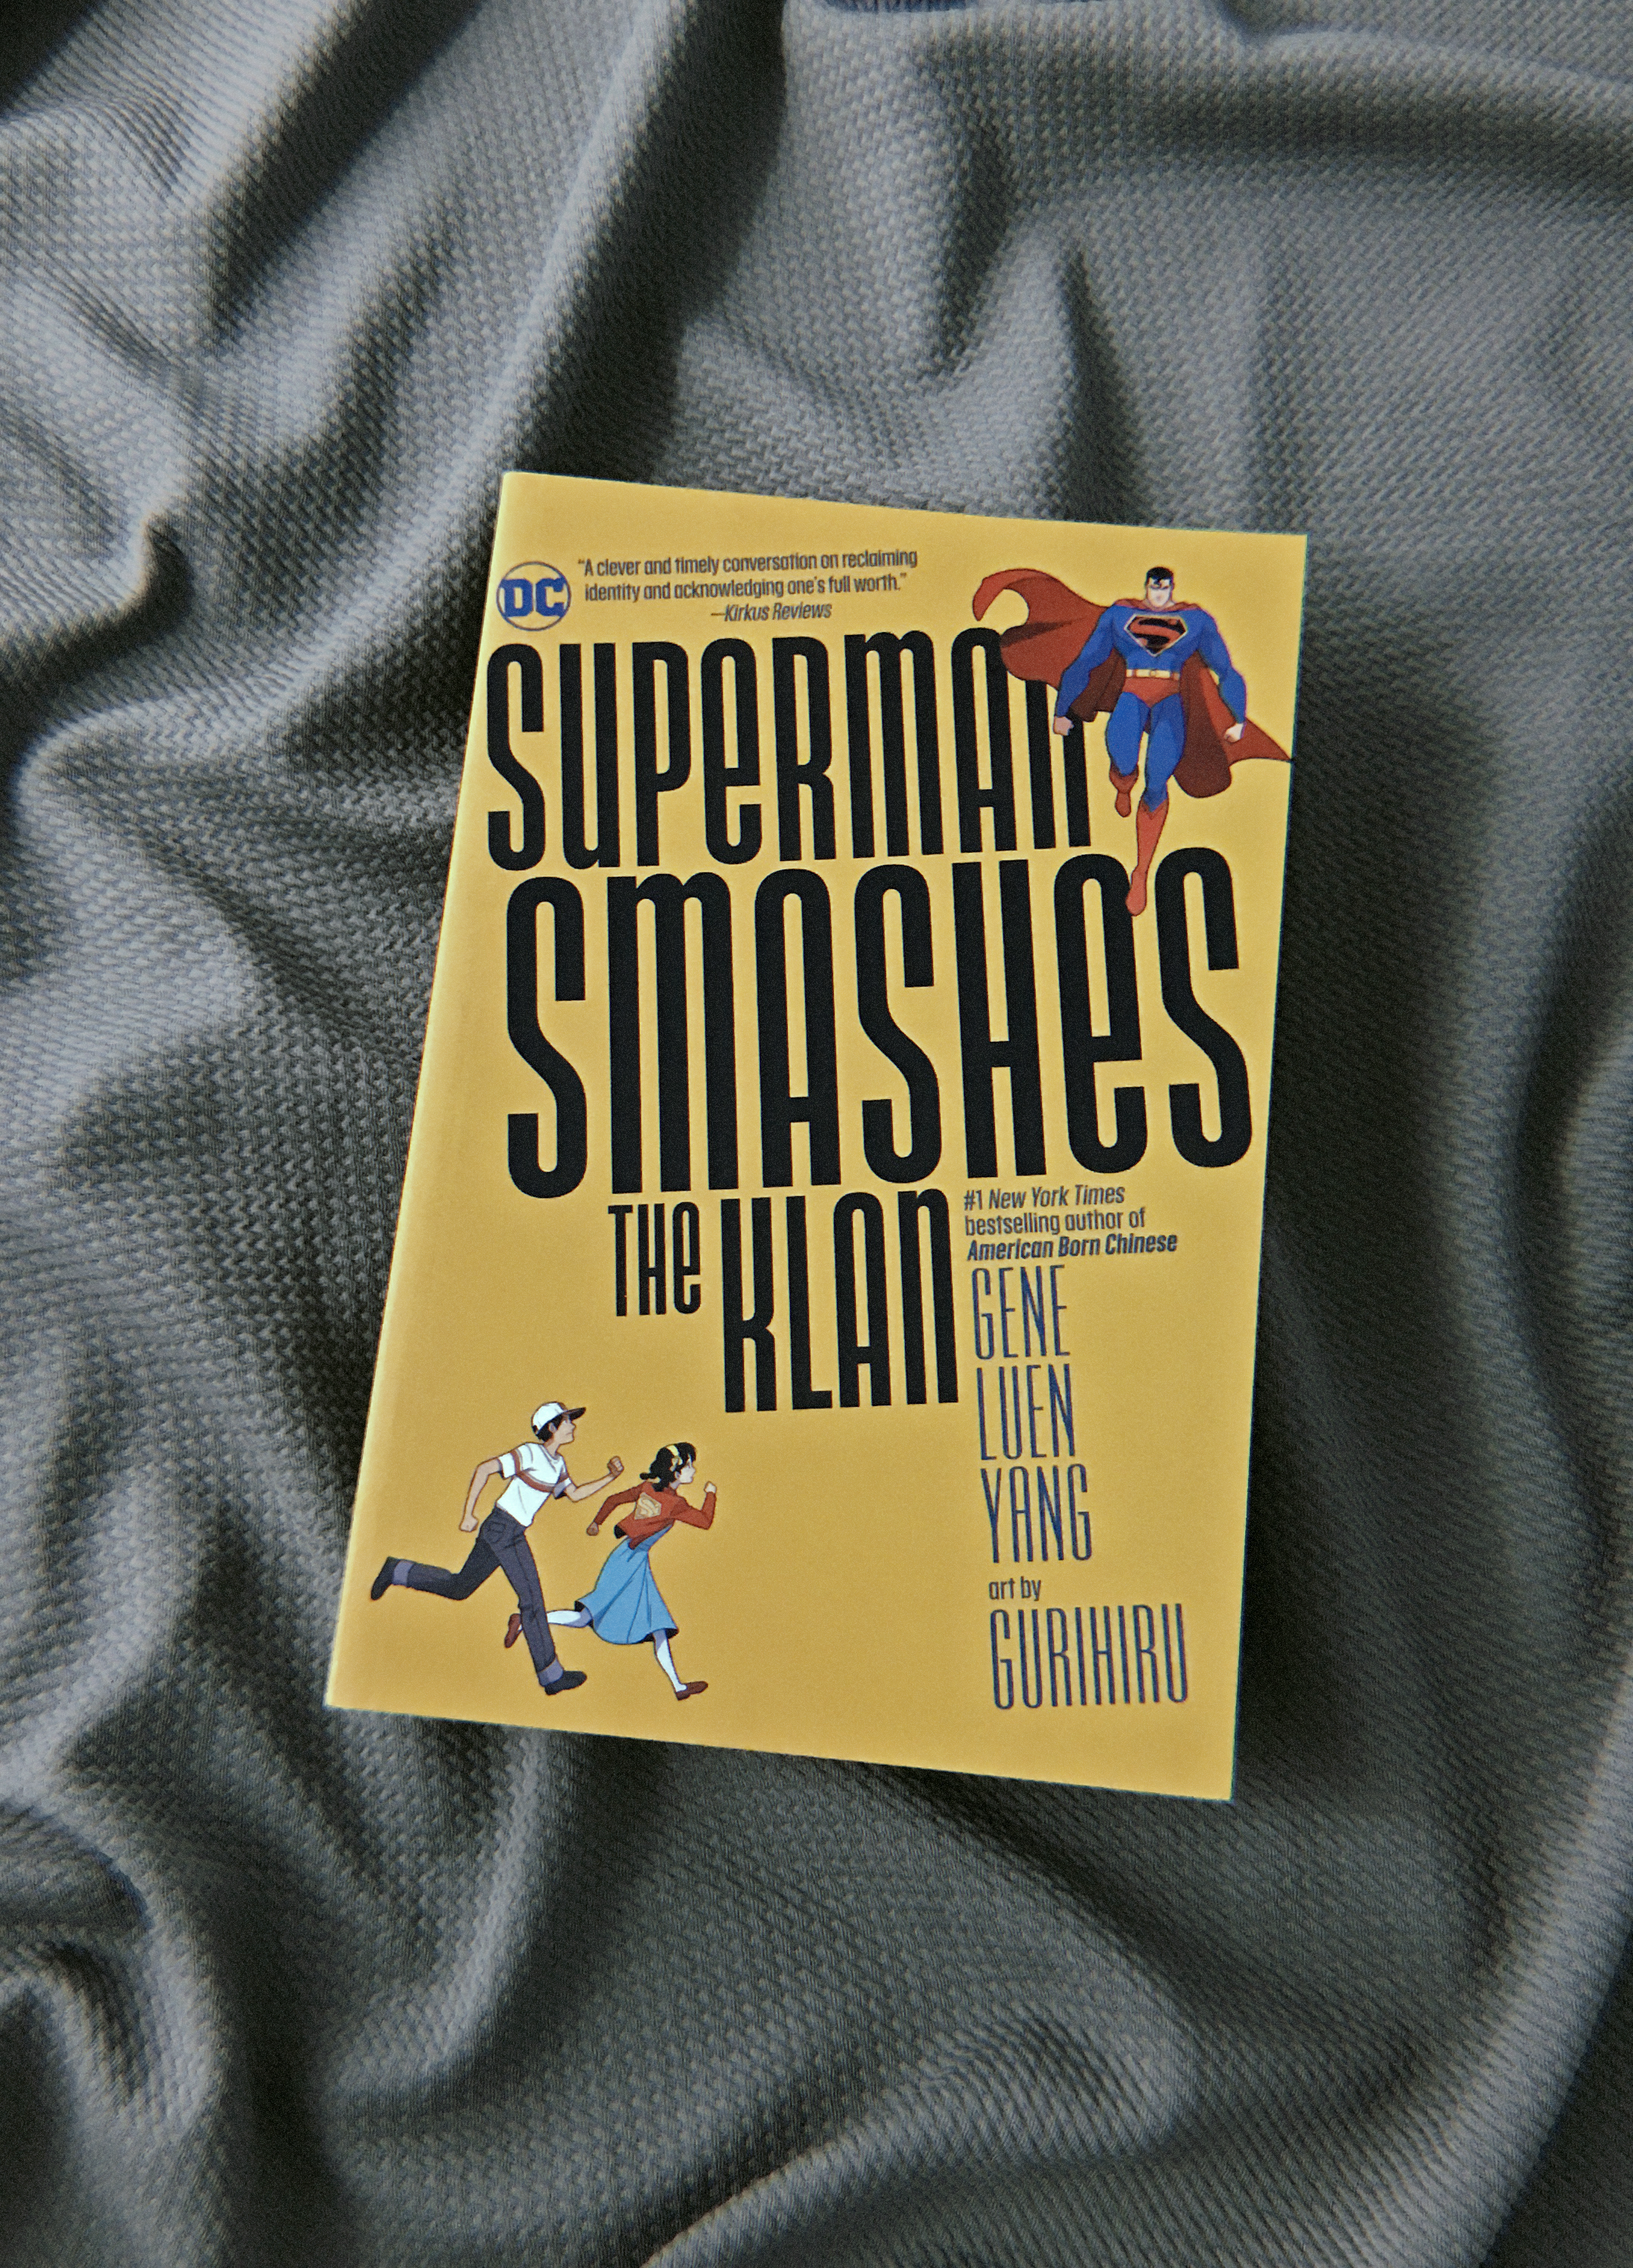 superman smashes the klan - gene luen yang, gurihiru